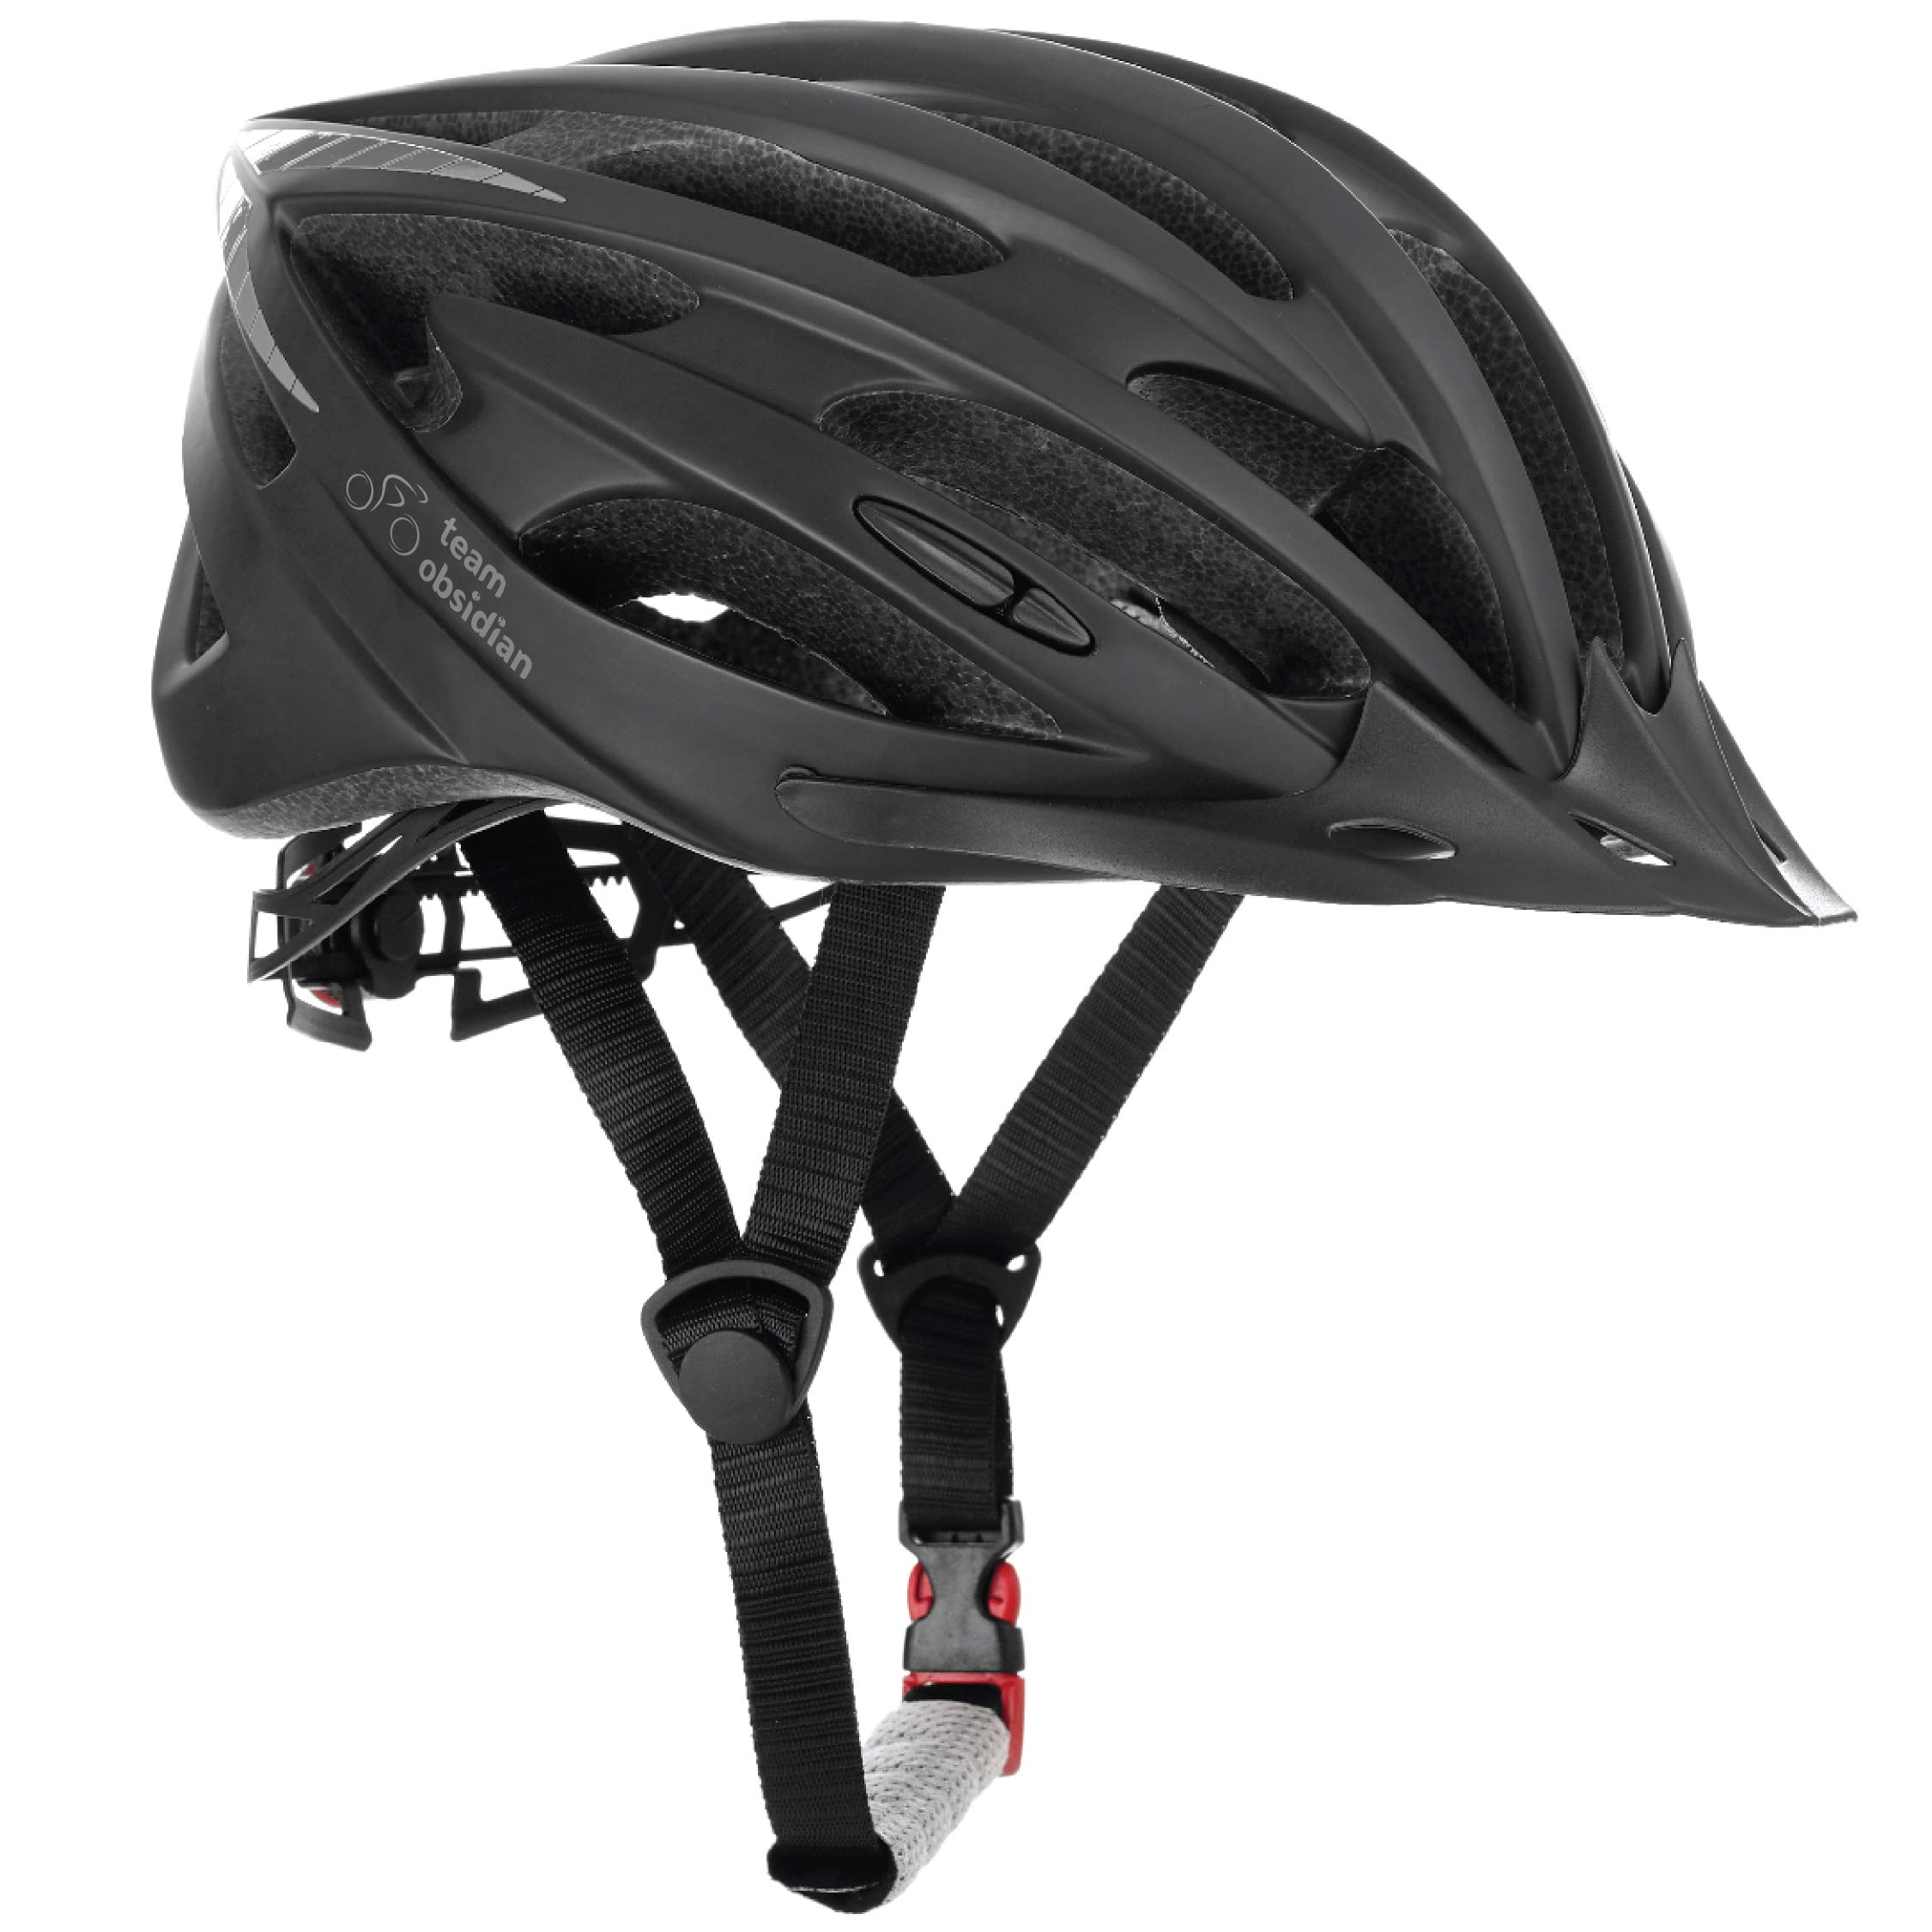 TeamObsidian Airflow Bike Helmet with in-Molded Reinforcing Skeleton for Added Protection - Adult Size, CPSC Safety Certified - Comfortable, Lightweight, Breathable product image